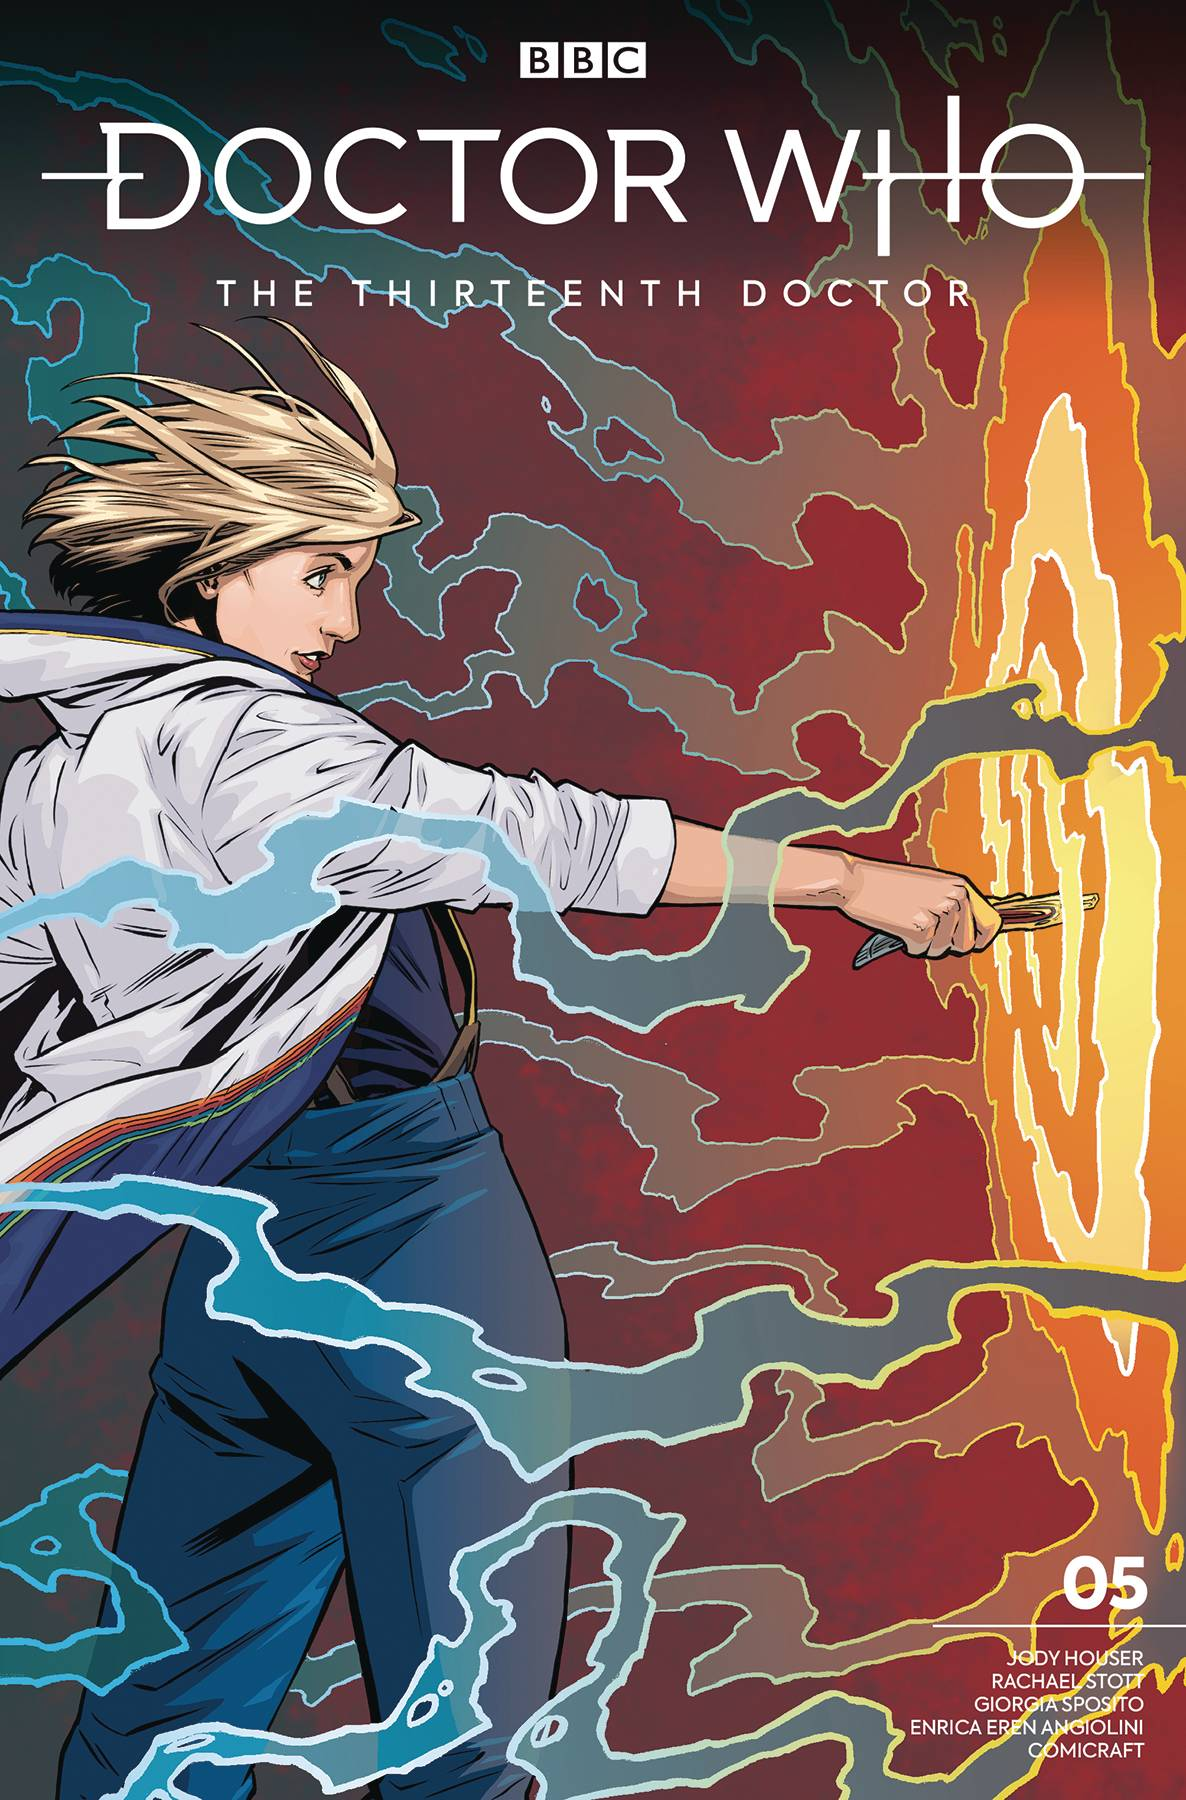 Doctor Who The Thirteenth Doctor #5